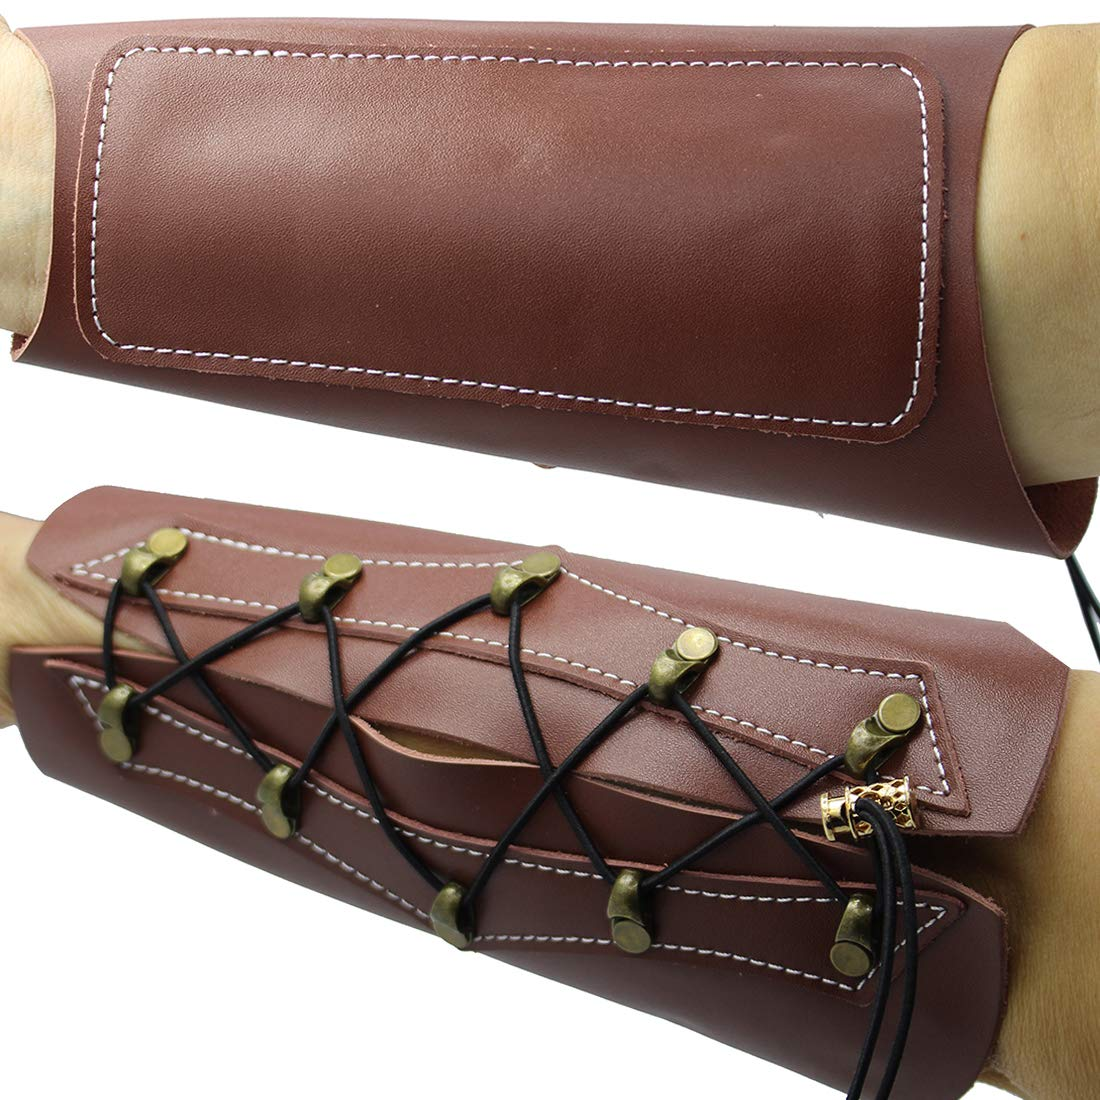 HRCHCG Protective Arm Guard Cow Leather Archery Recurve Bow Takedown Longbow Tradition American Hunting Back Hand Guard Safe Protector Hunting Bow and Arrow Accessories